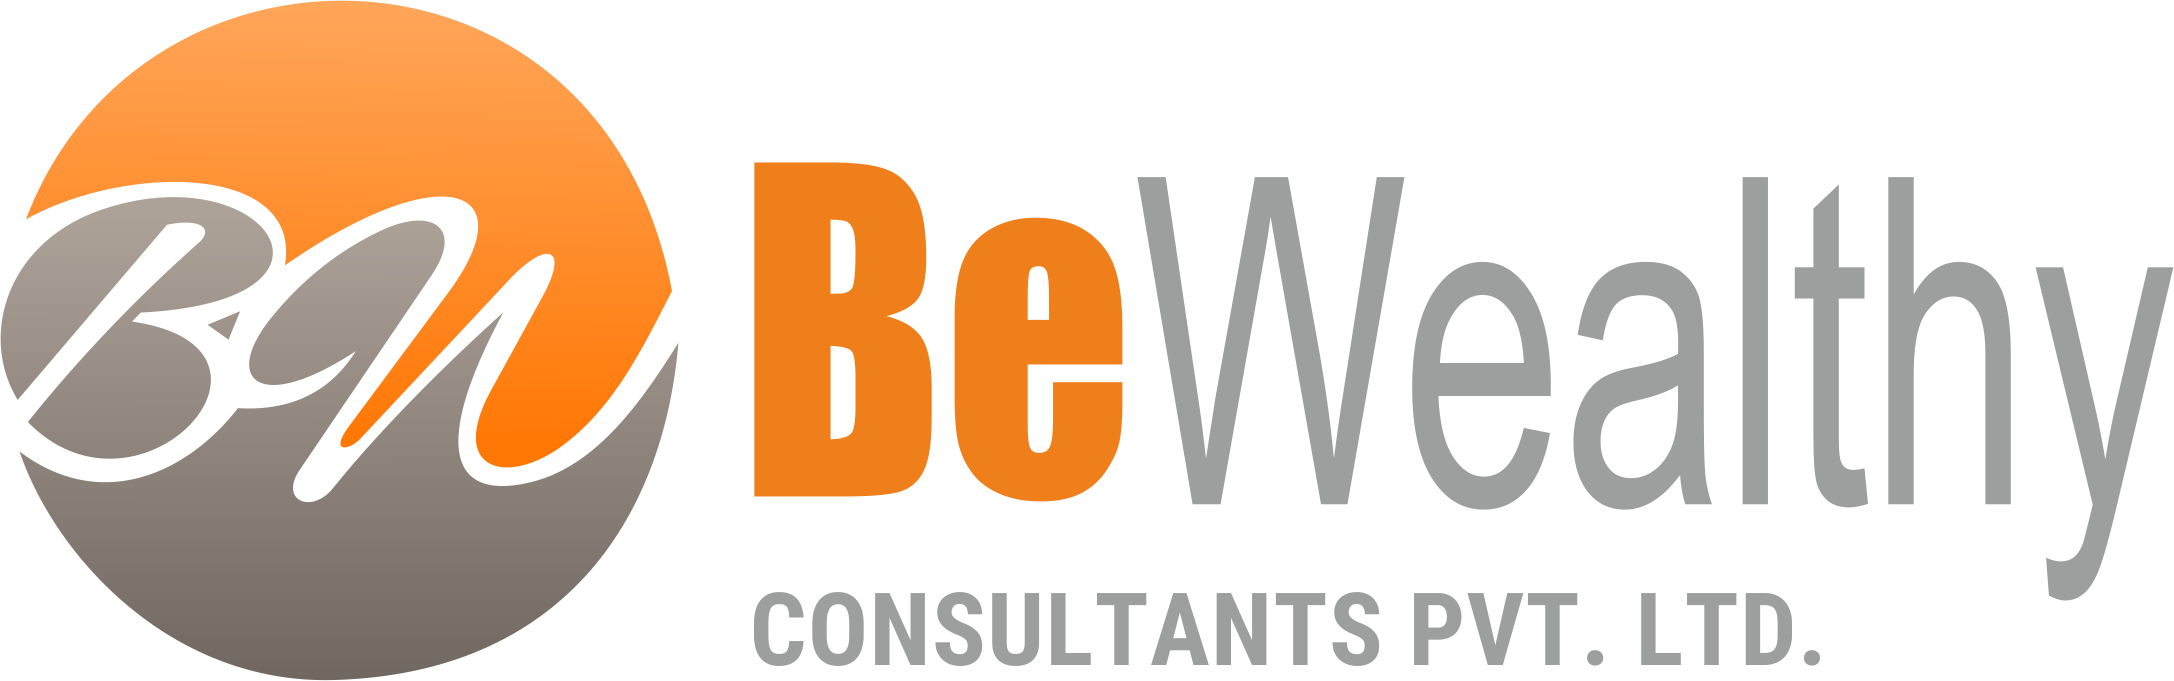 BeWealthy Consultants Pvt. Ltd.